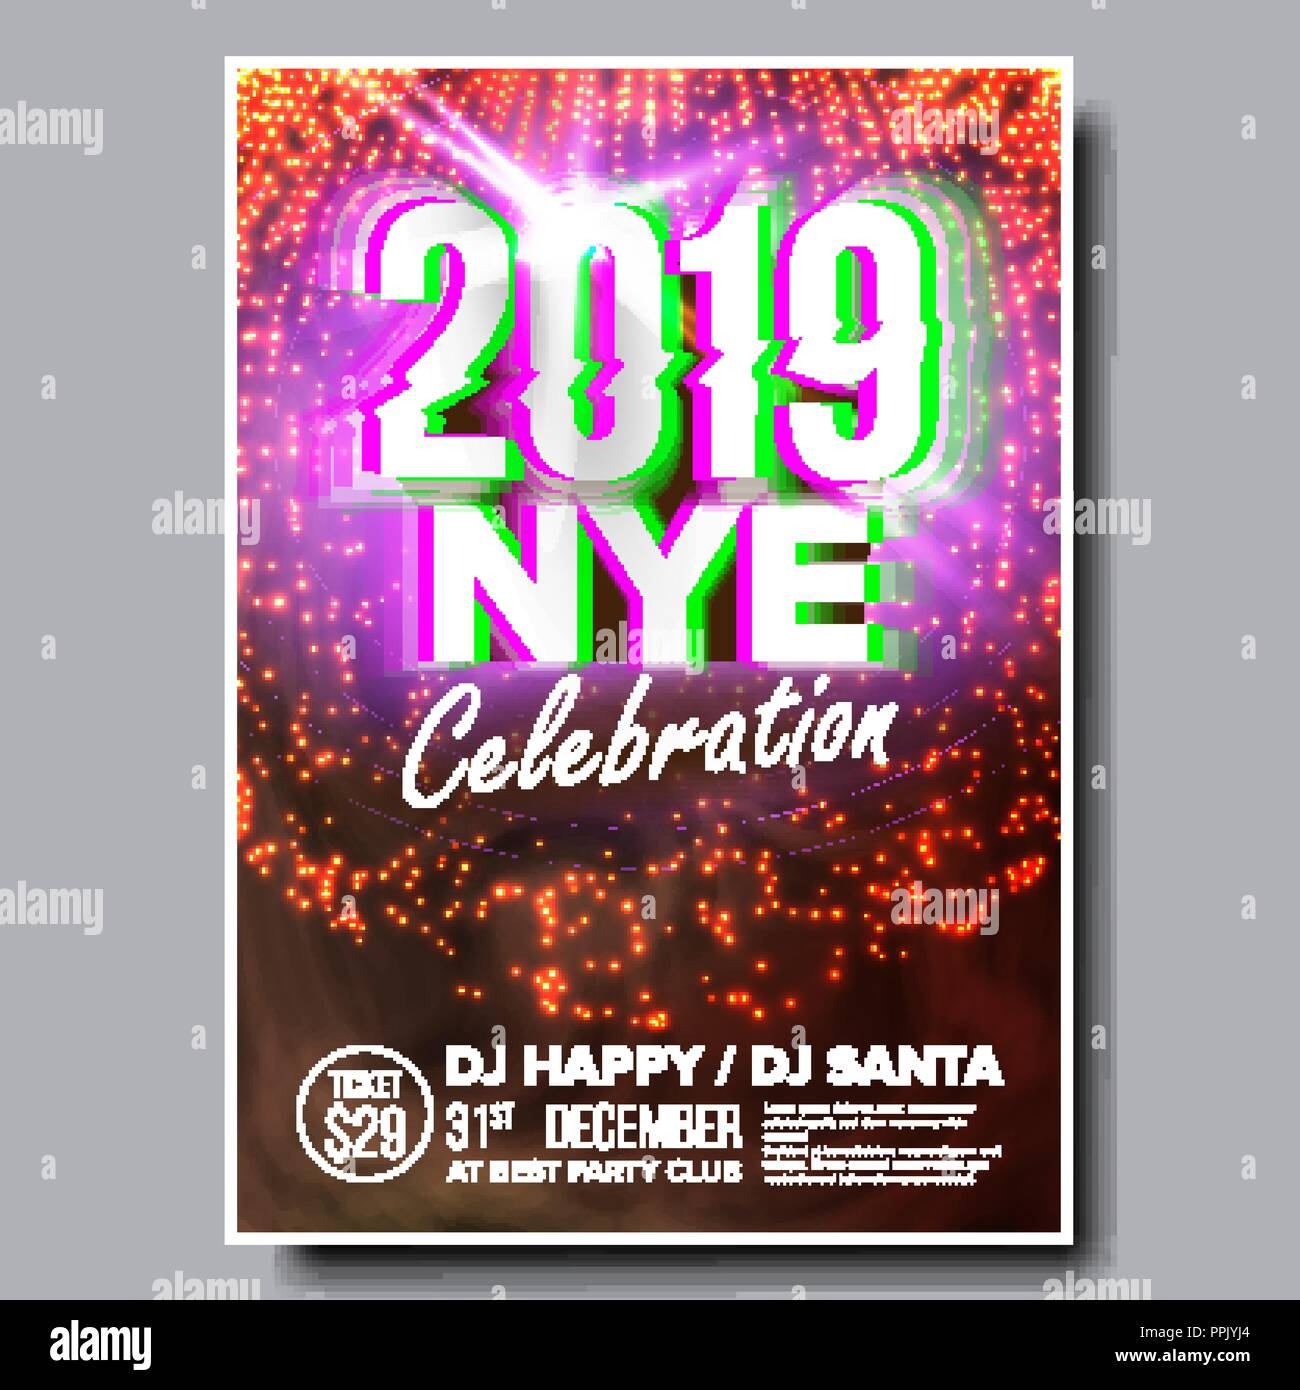 2019 party flyer poster vector happy new year holiday invitation christmas disco light design illustration